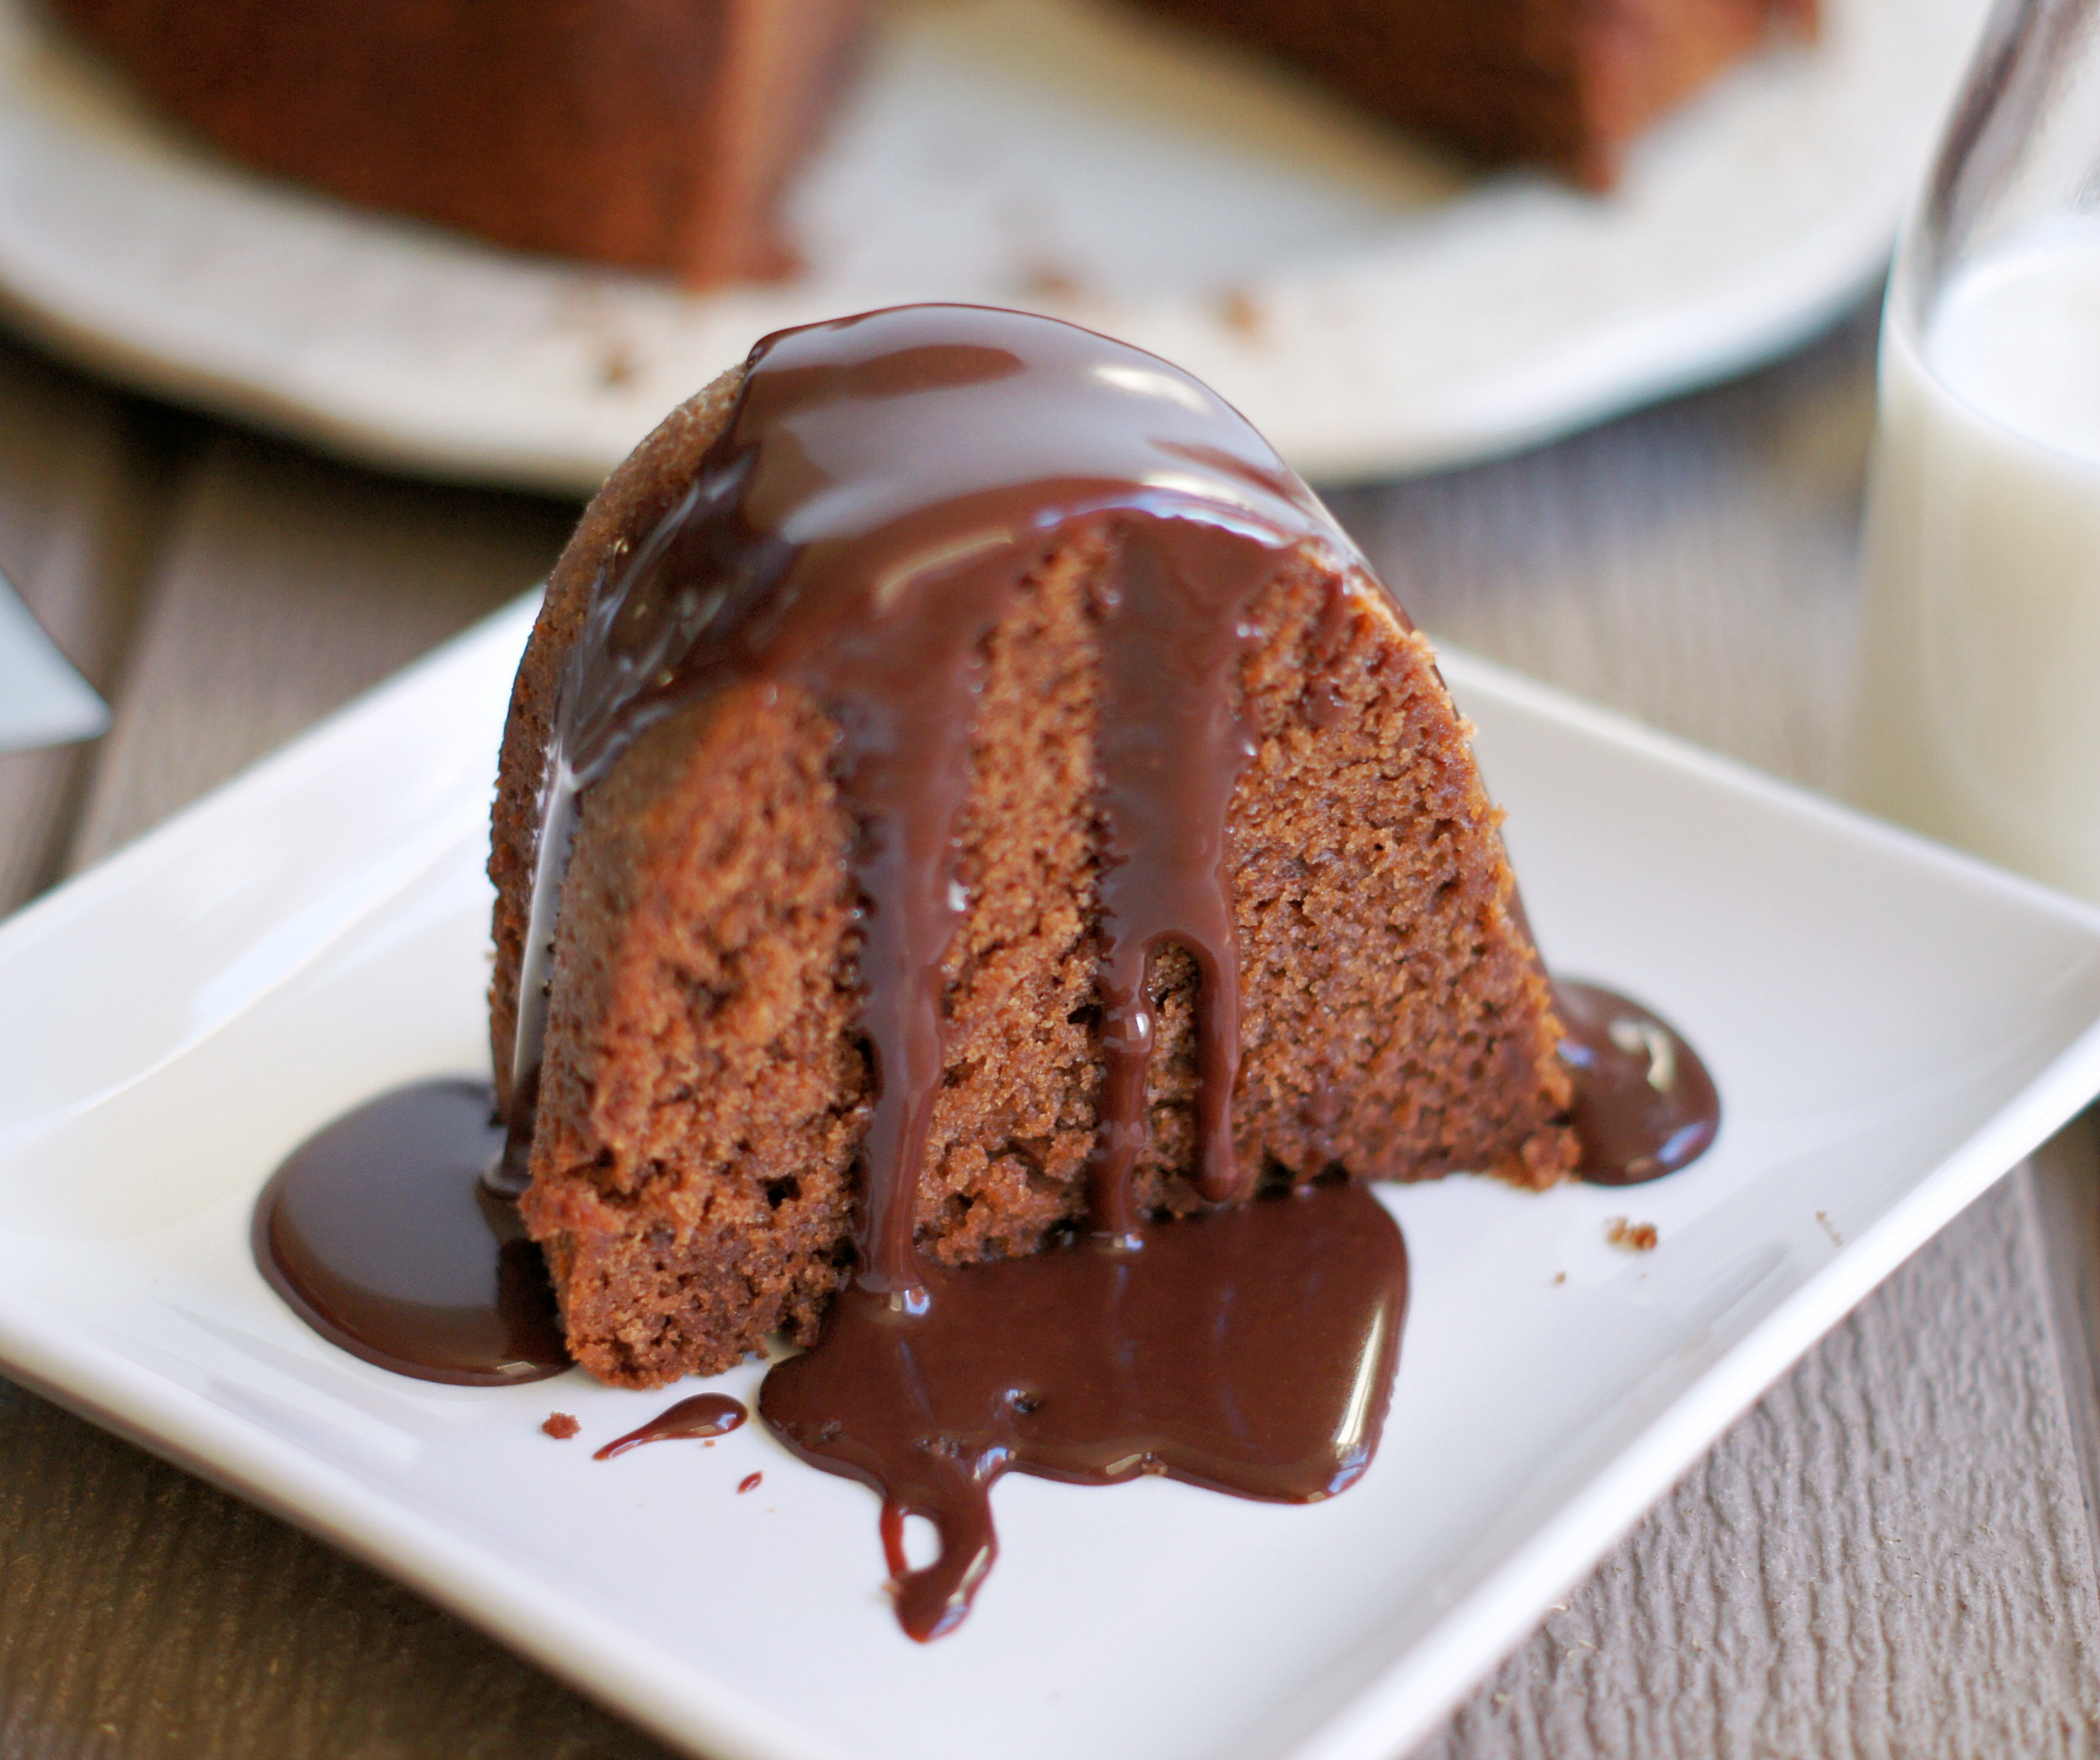 Chocolate Bundt Cake With Hot Fudge Sauce